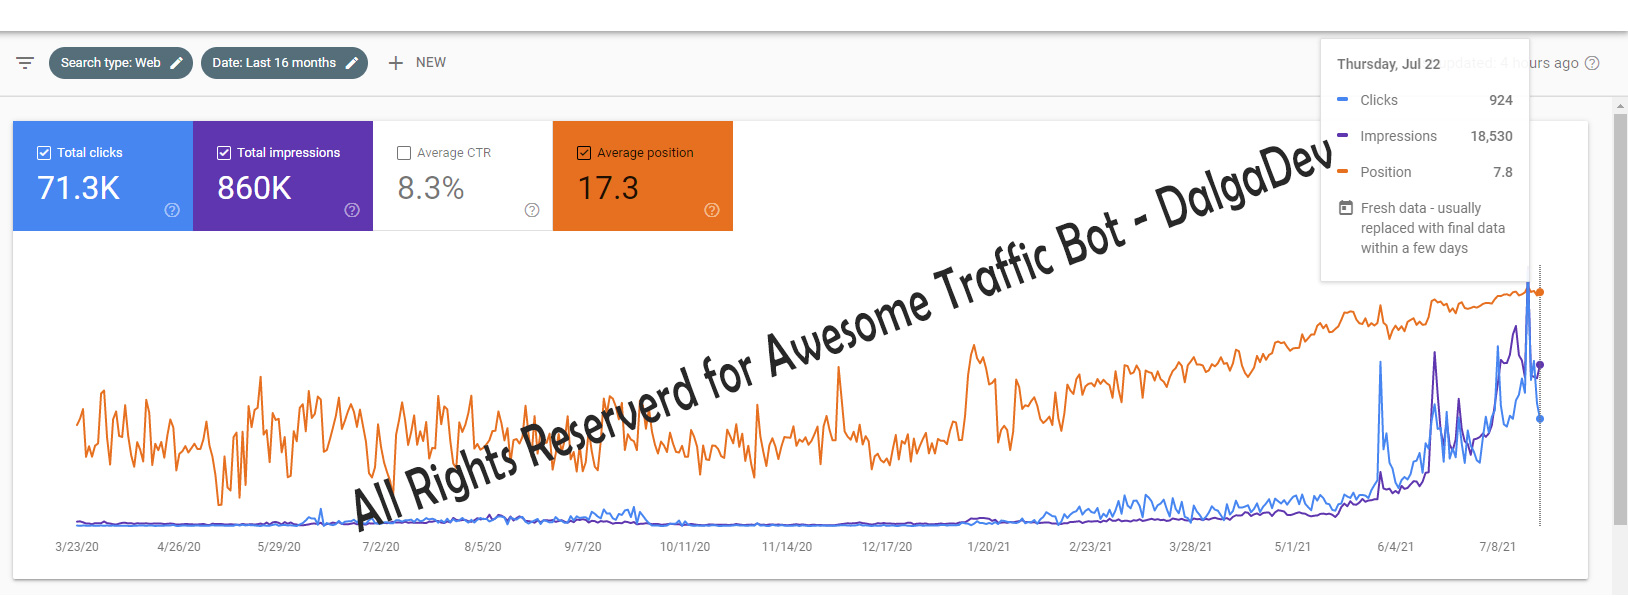 ATB - Webmaster results after 16 months usage